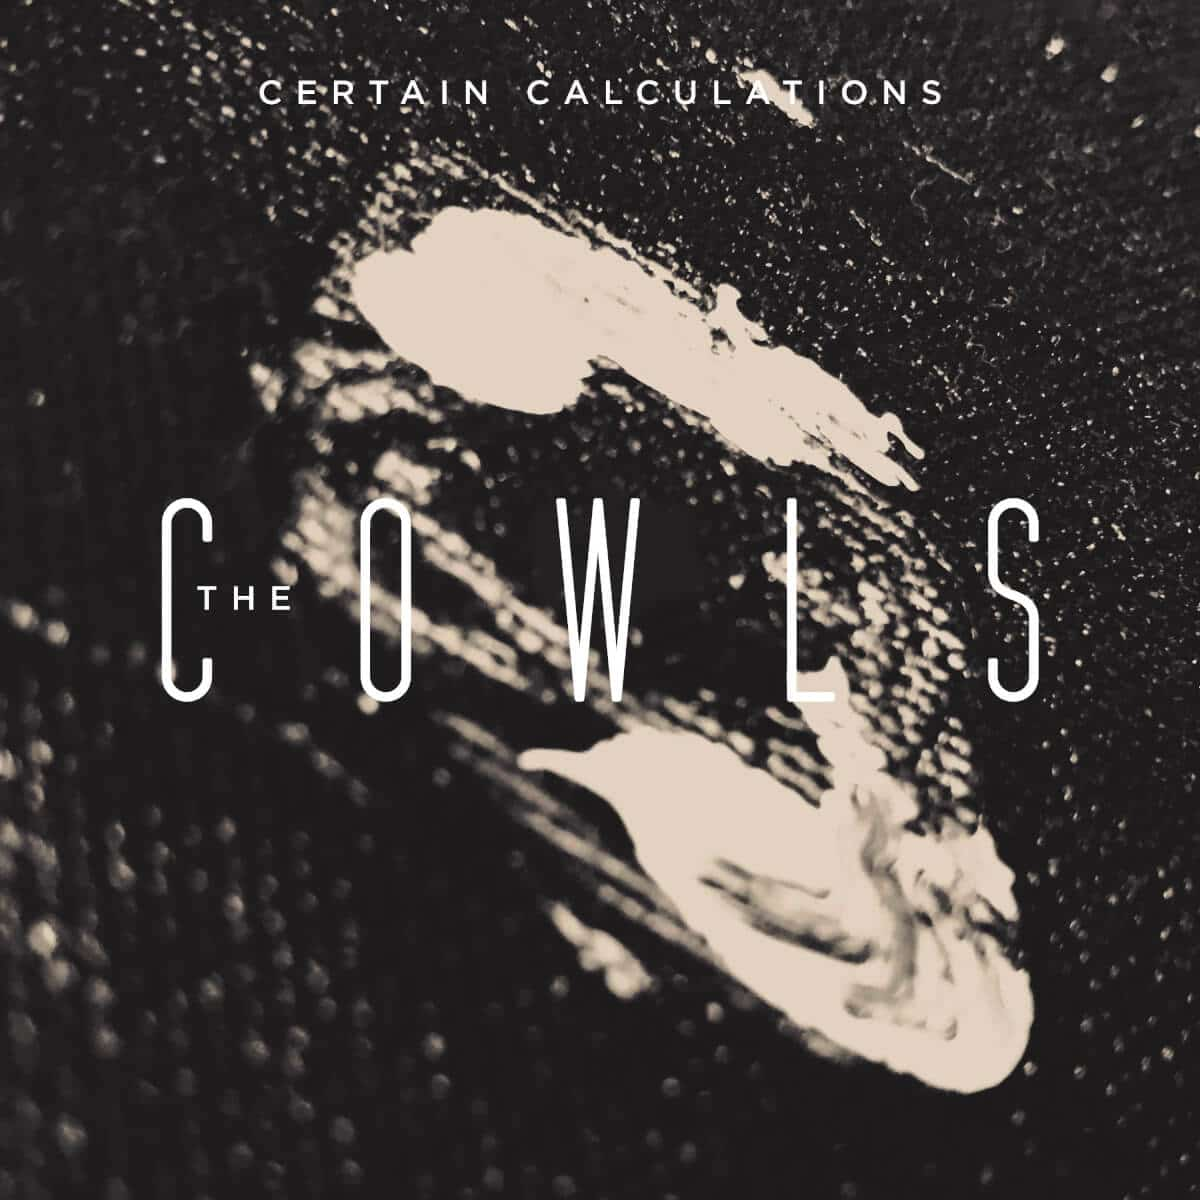 The Cowls – Certain Calculations